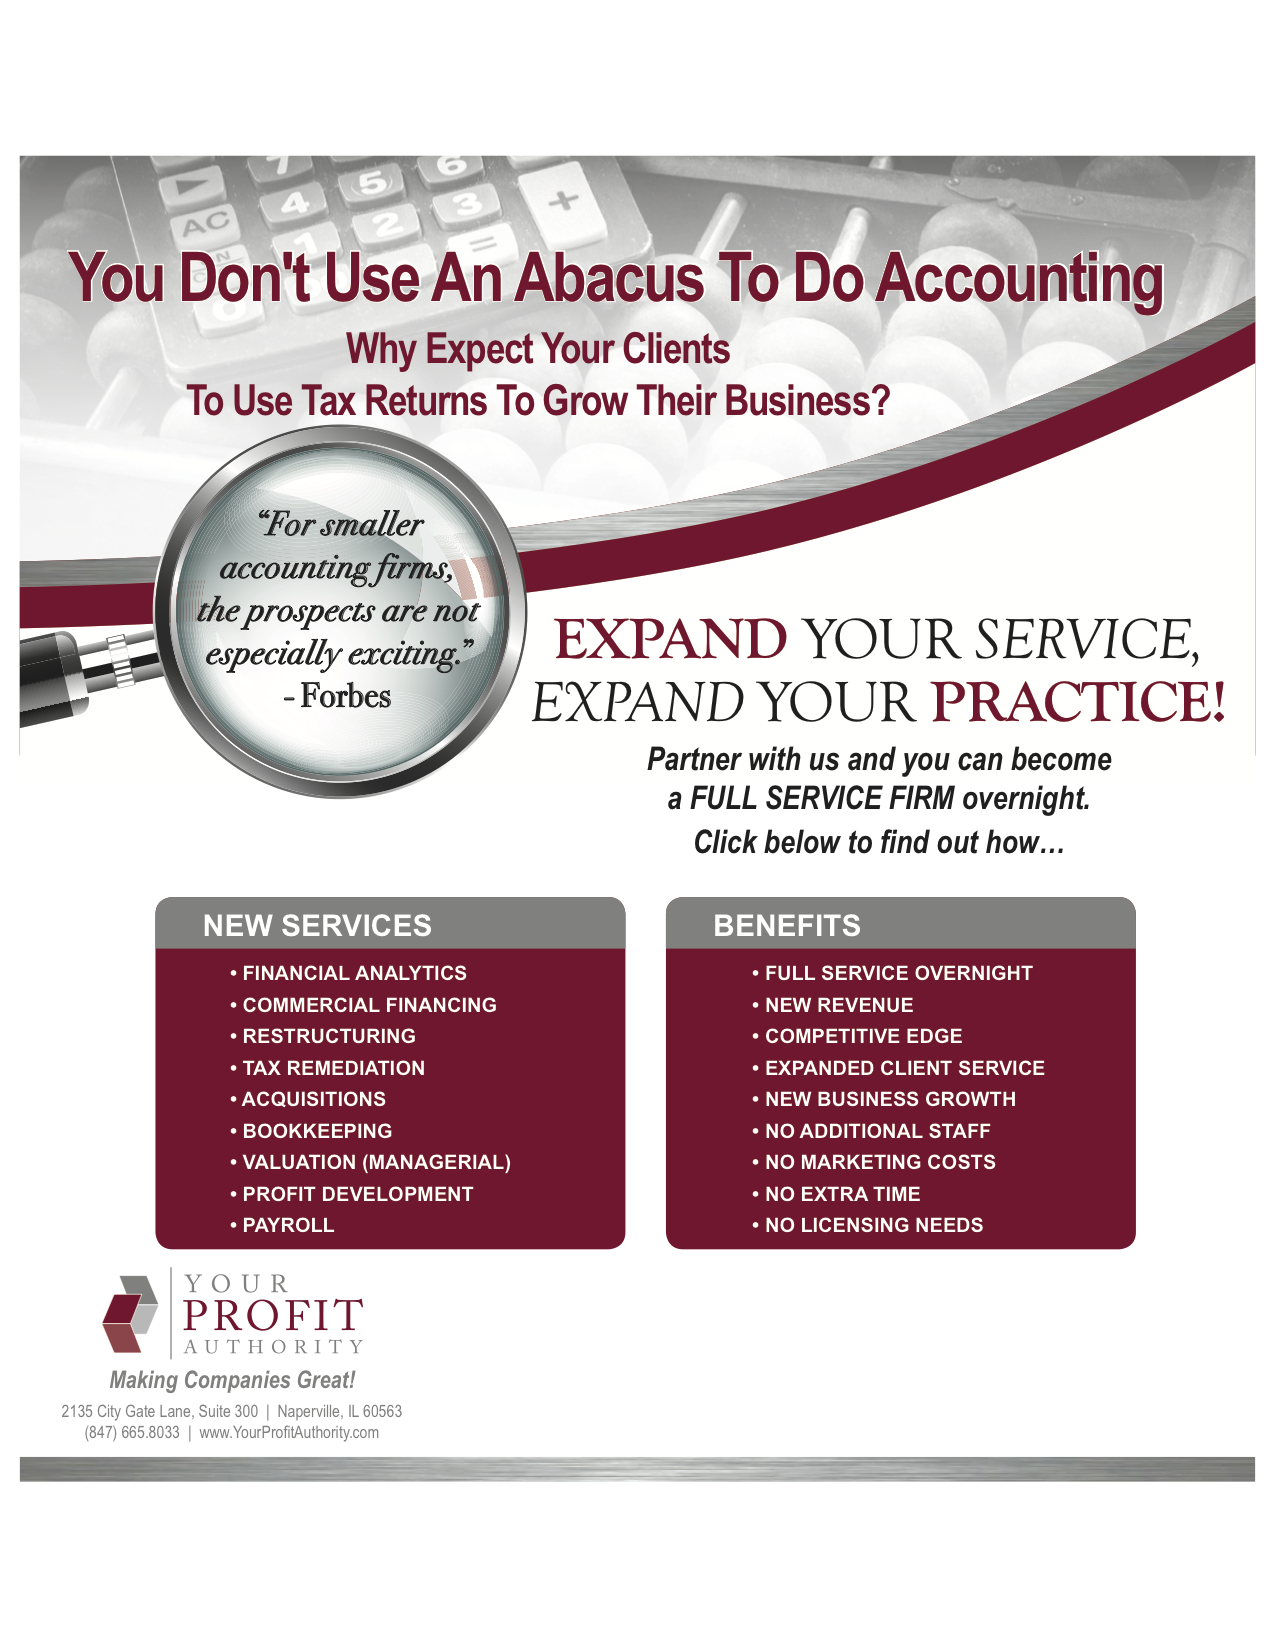 Image of accounting advertisement